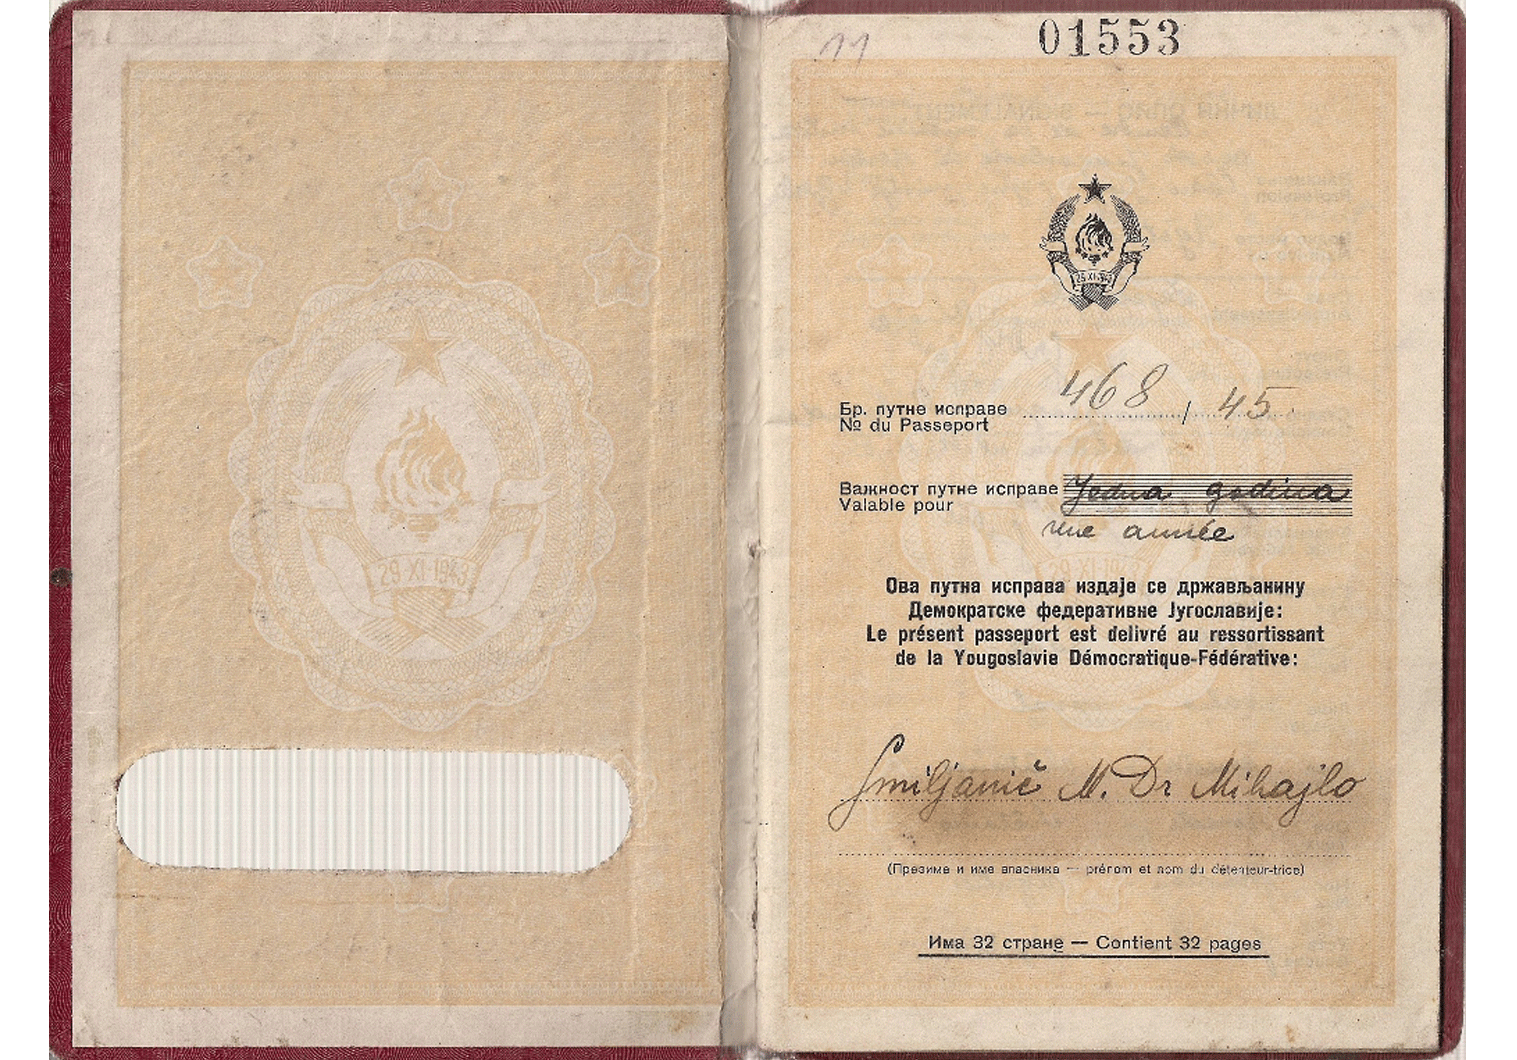 1945 Yugoslavian official passport